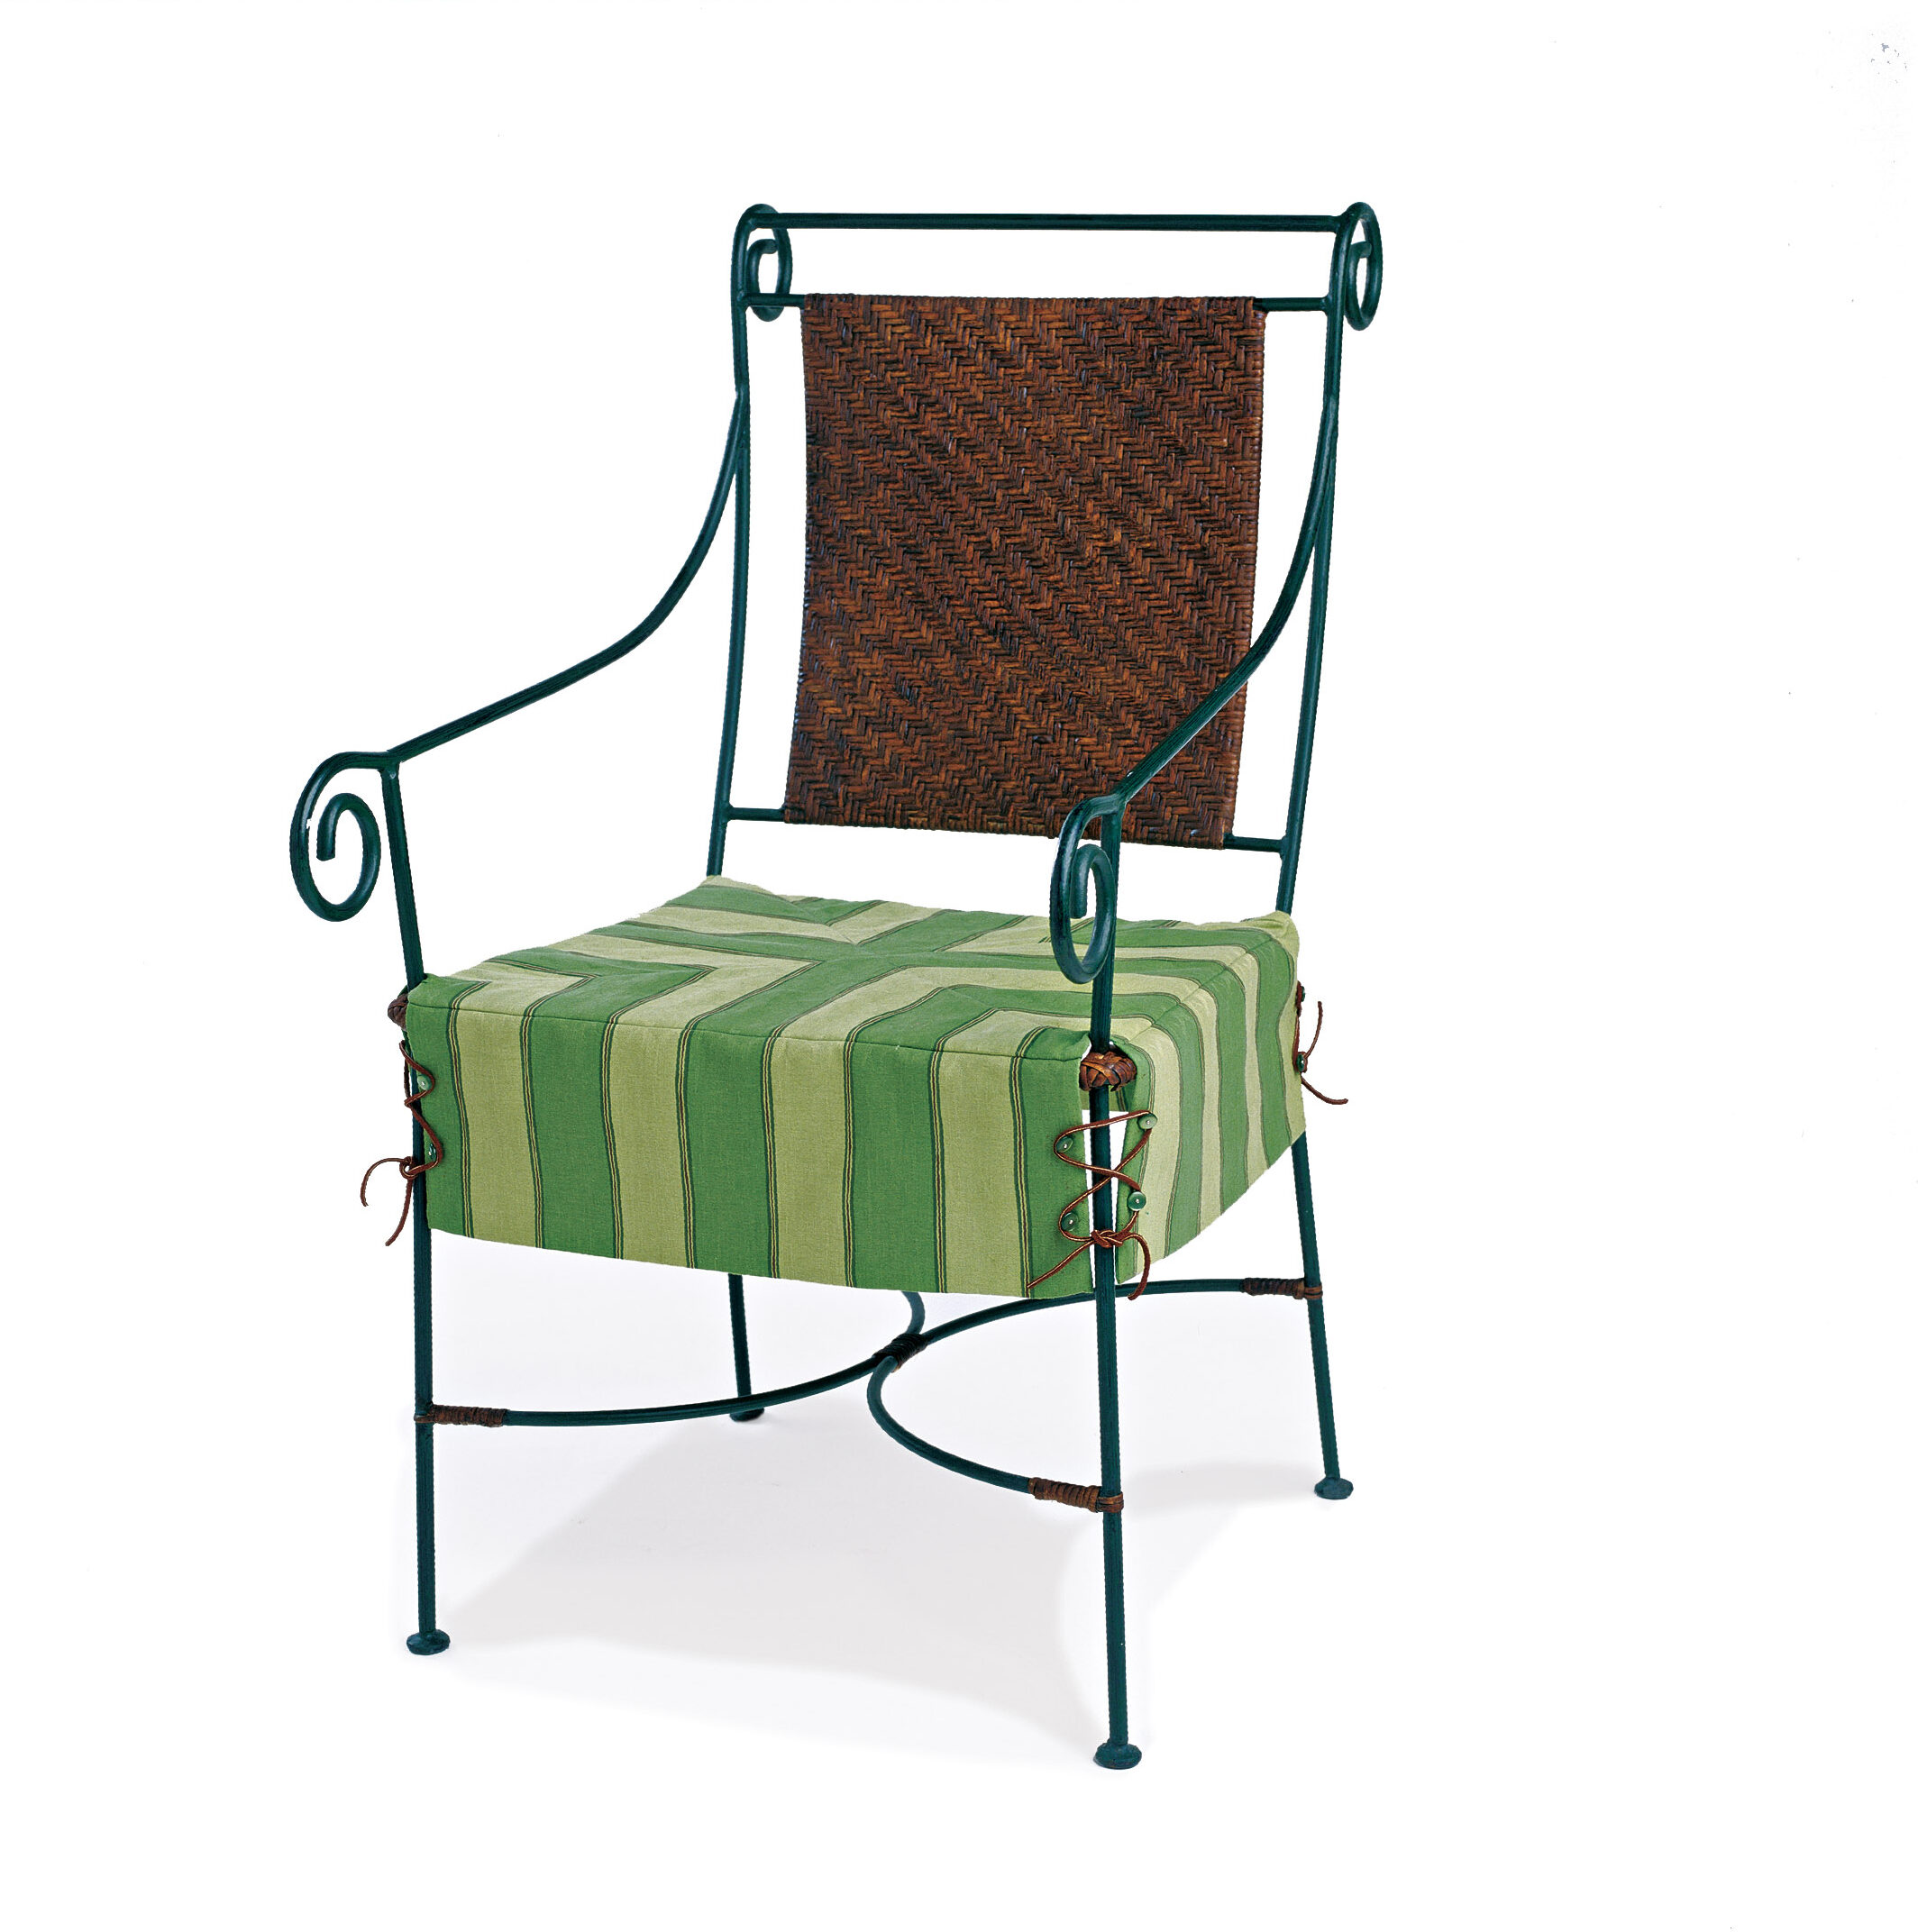 green seat cover over a wire chair